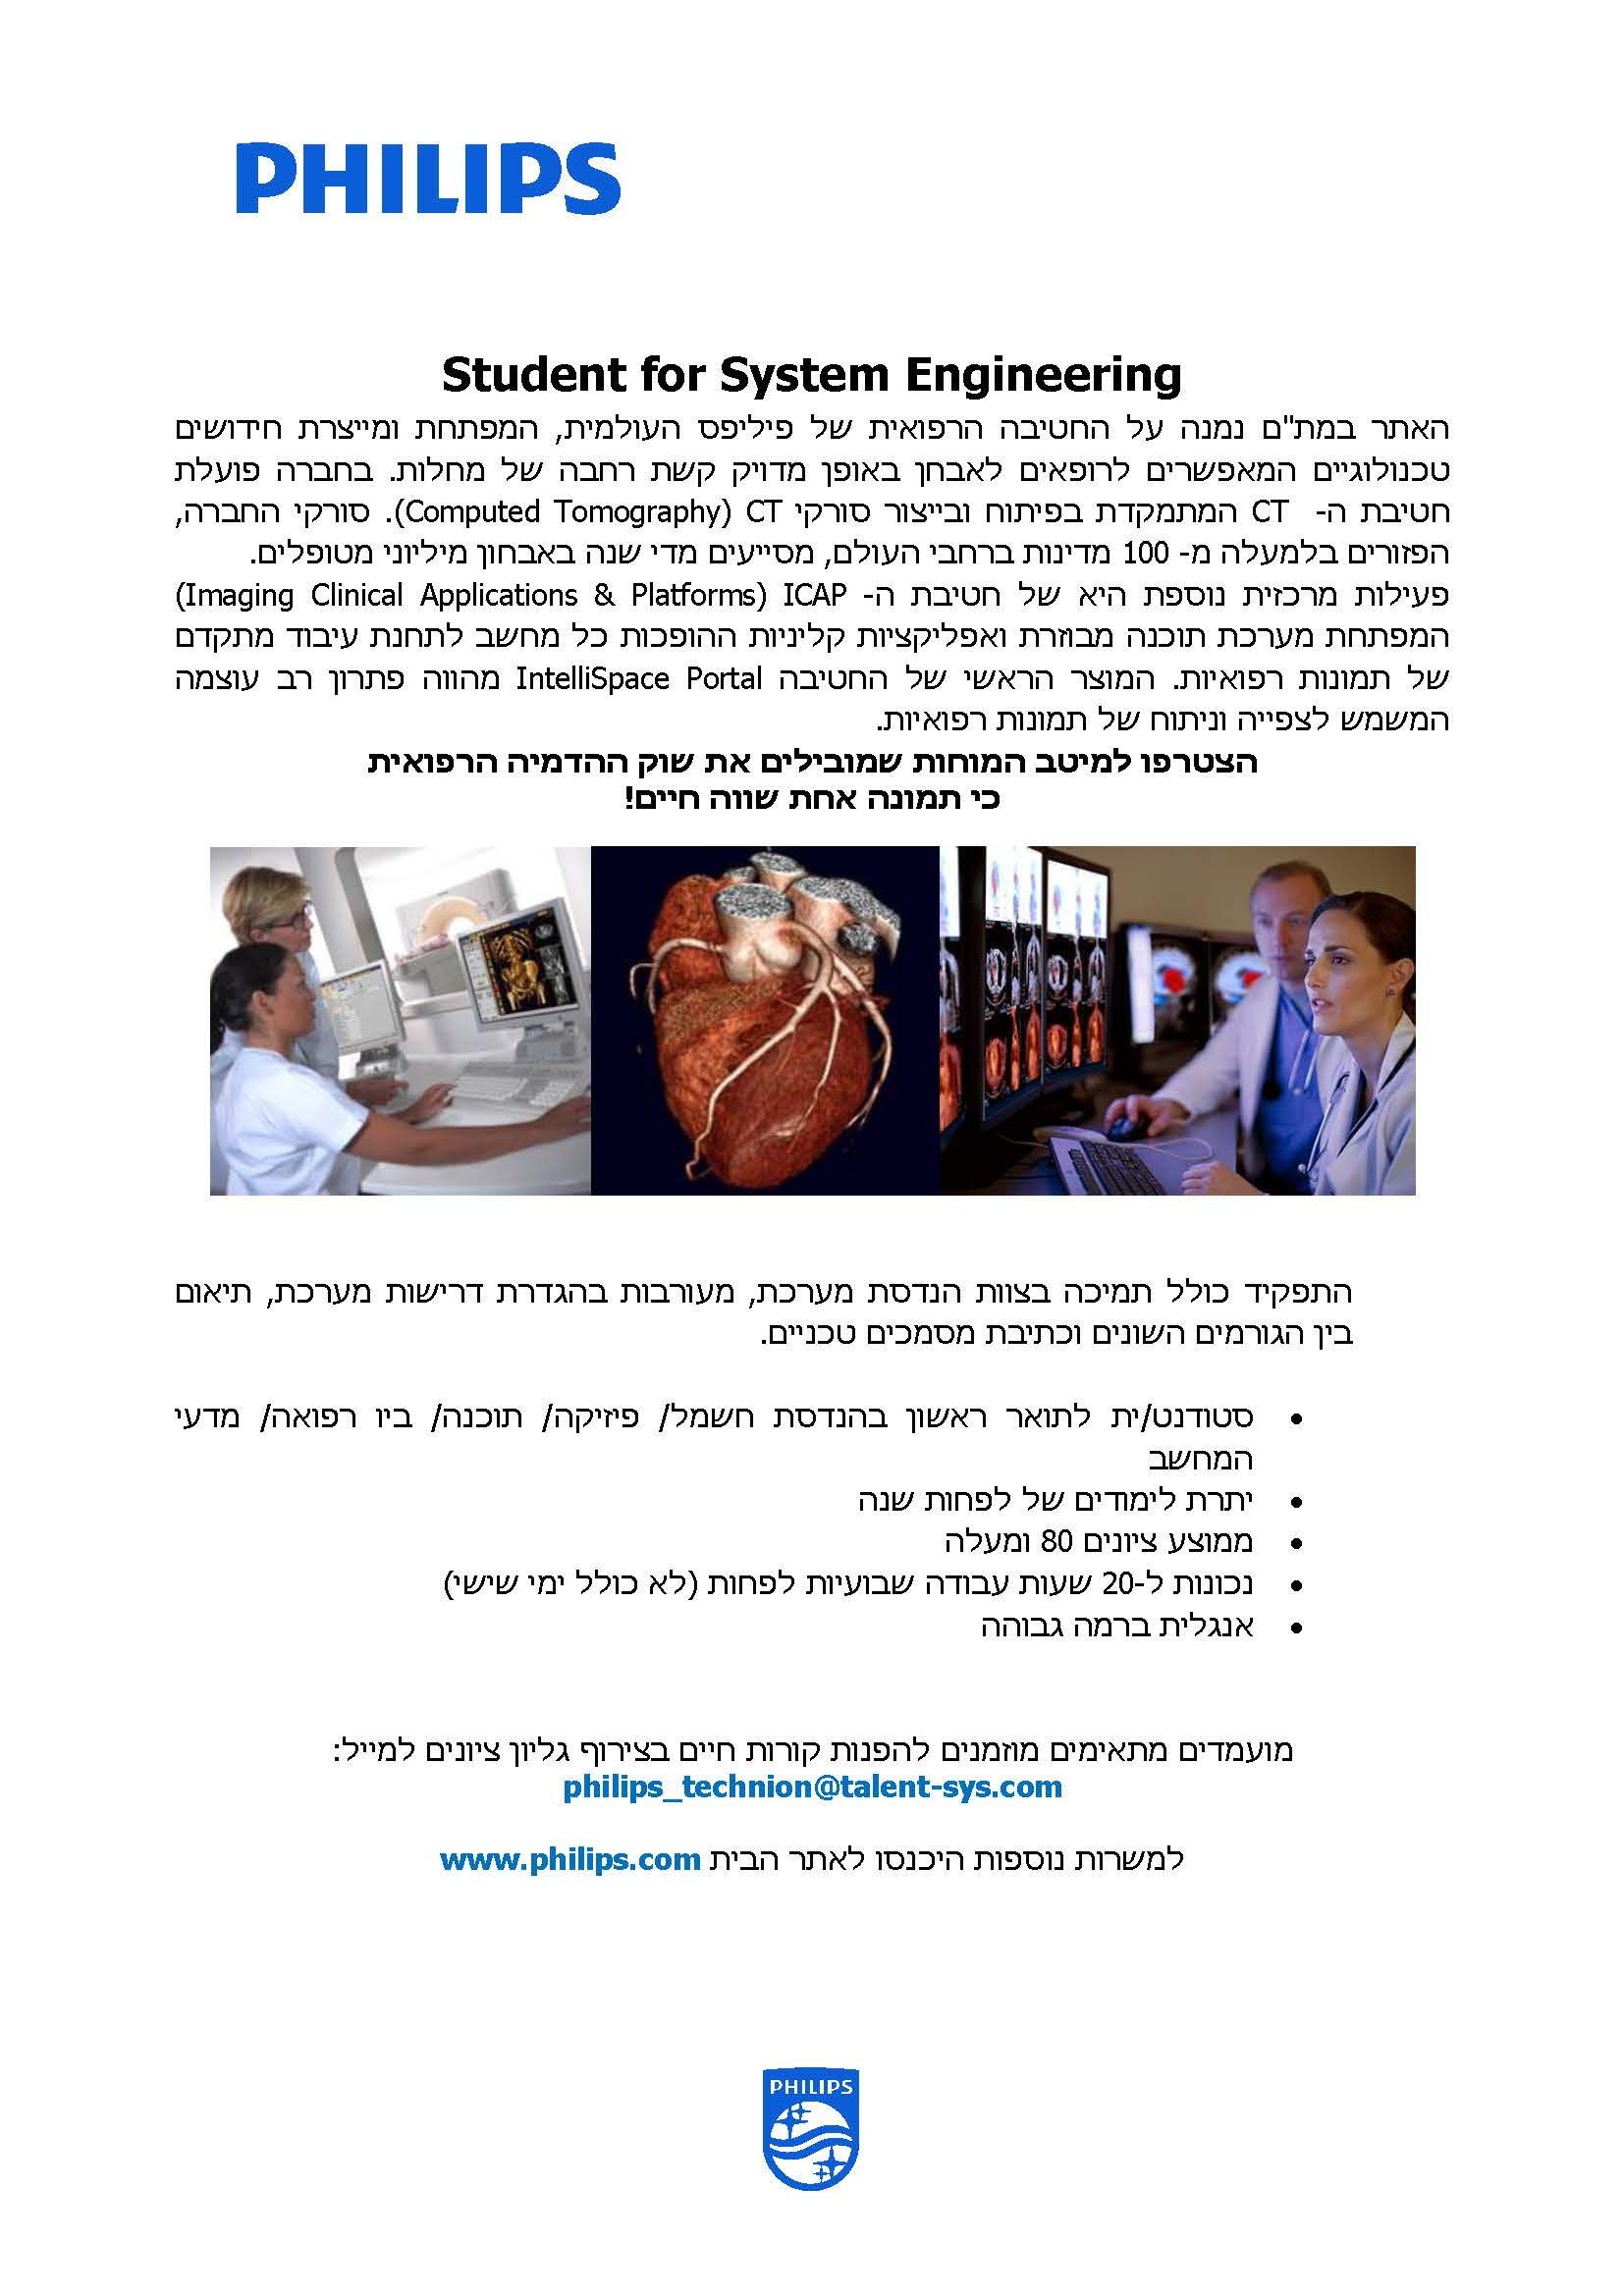 Philips-Student-for-System-Engineering